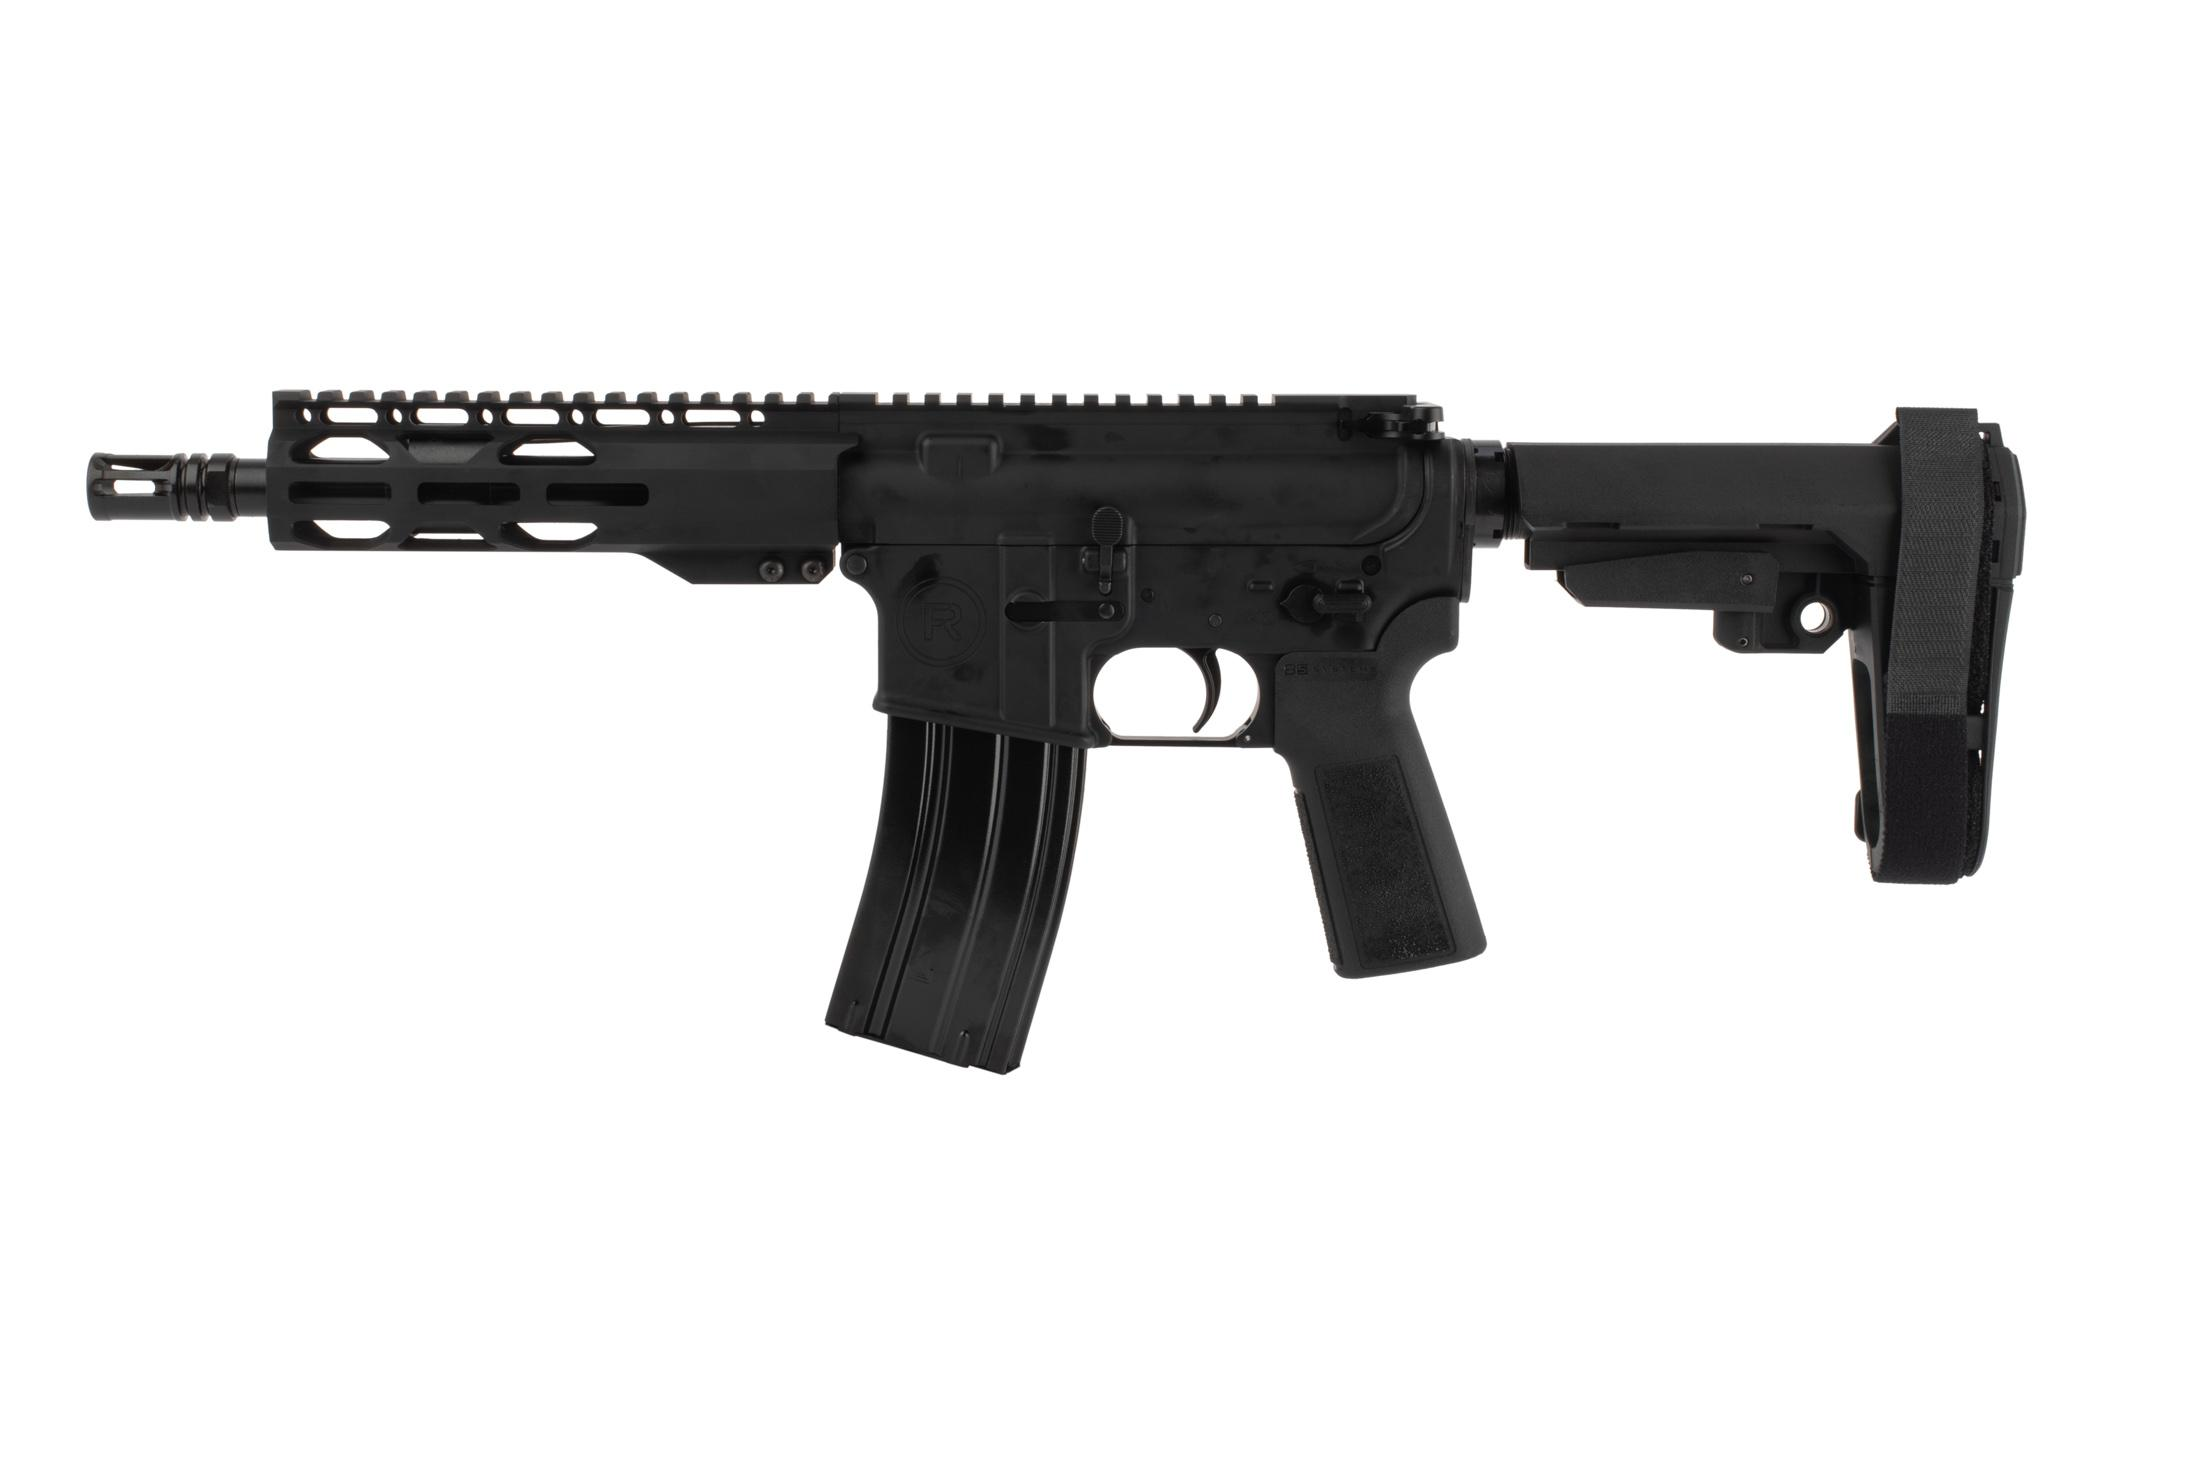 The Radical Firearms 300 blackout AR pistol with birdcage style flash hider and a 1:7 twist rate